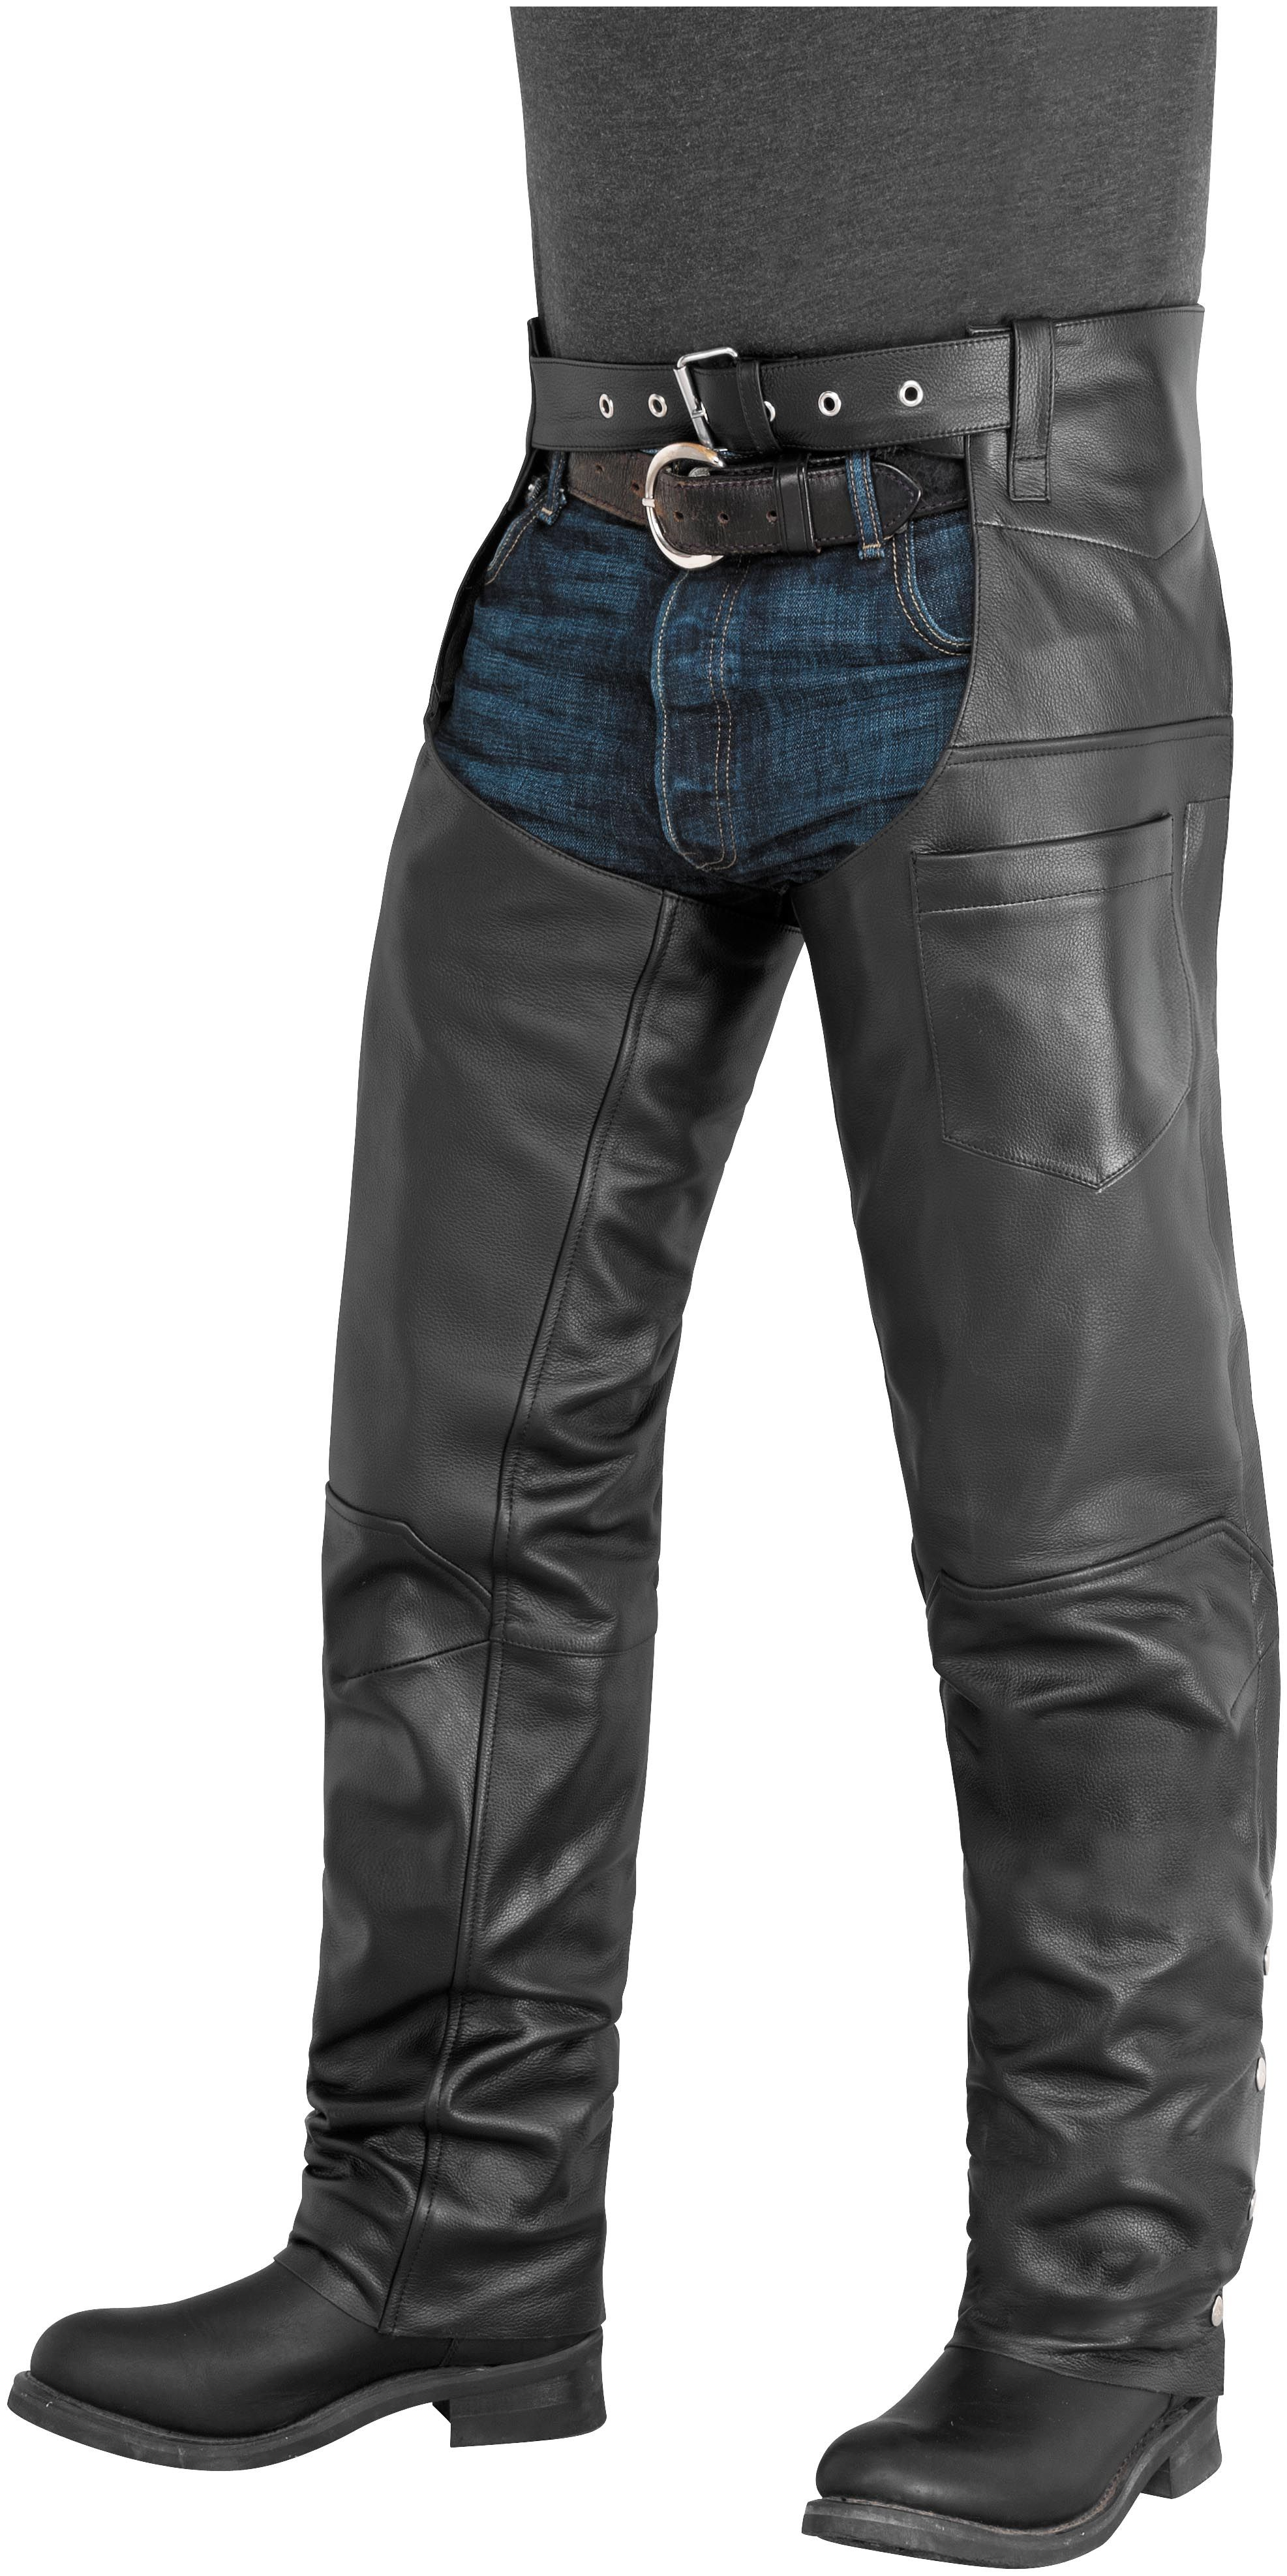 Plains Leather Chaps Motorcycle Chaps Chaps Leather Wear